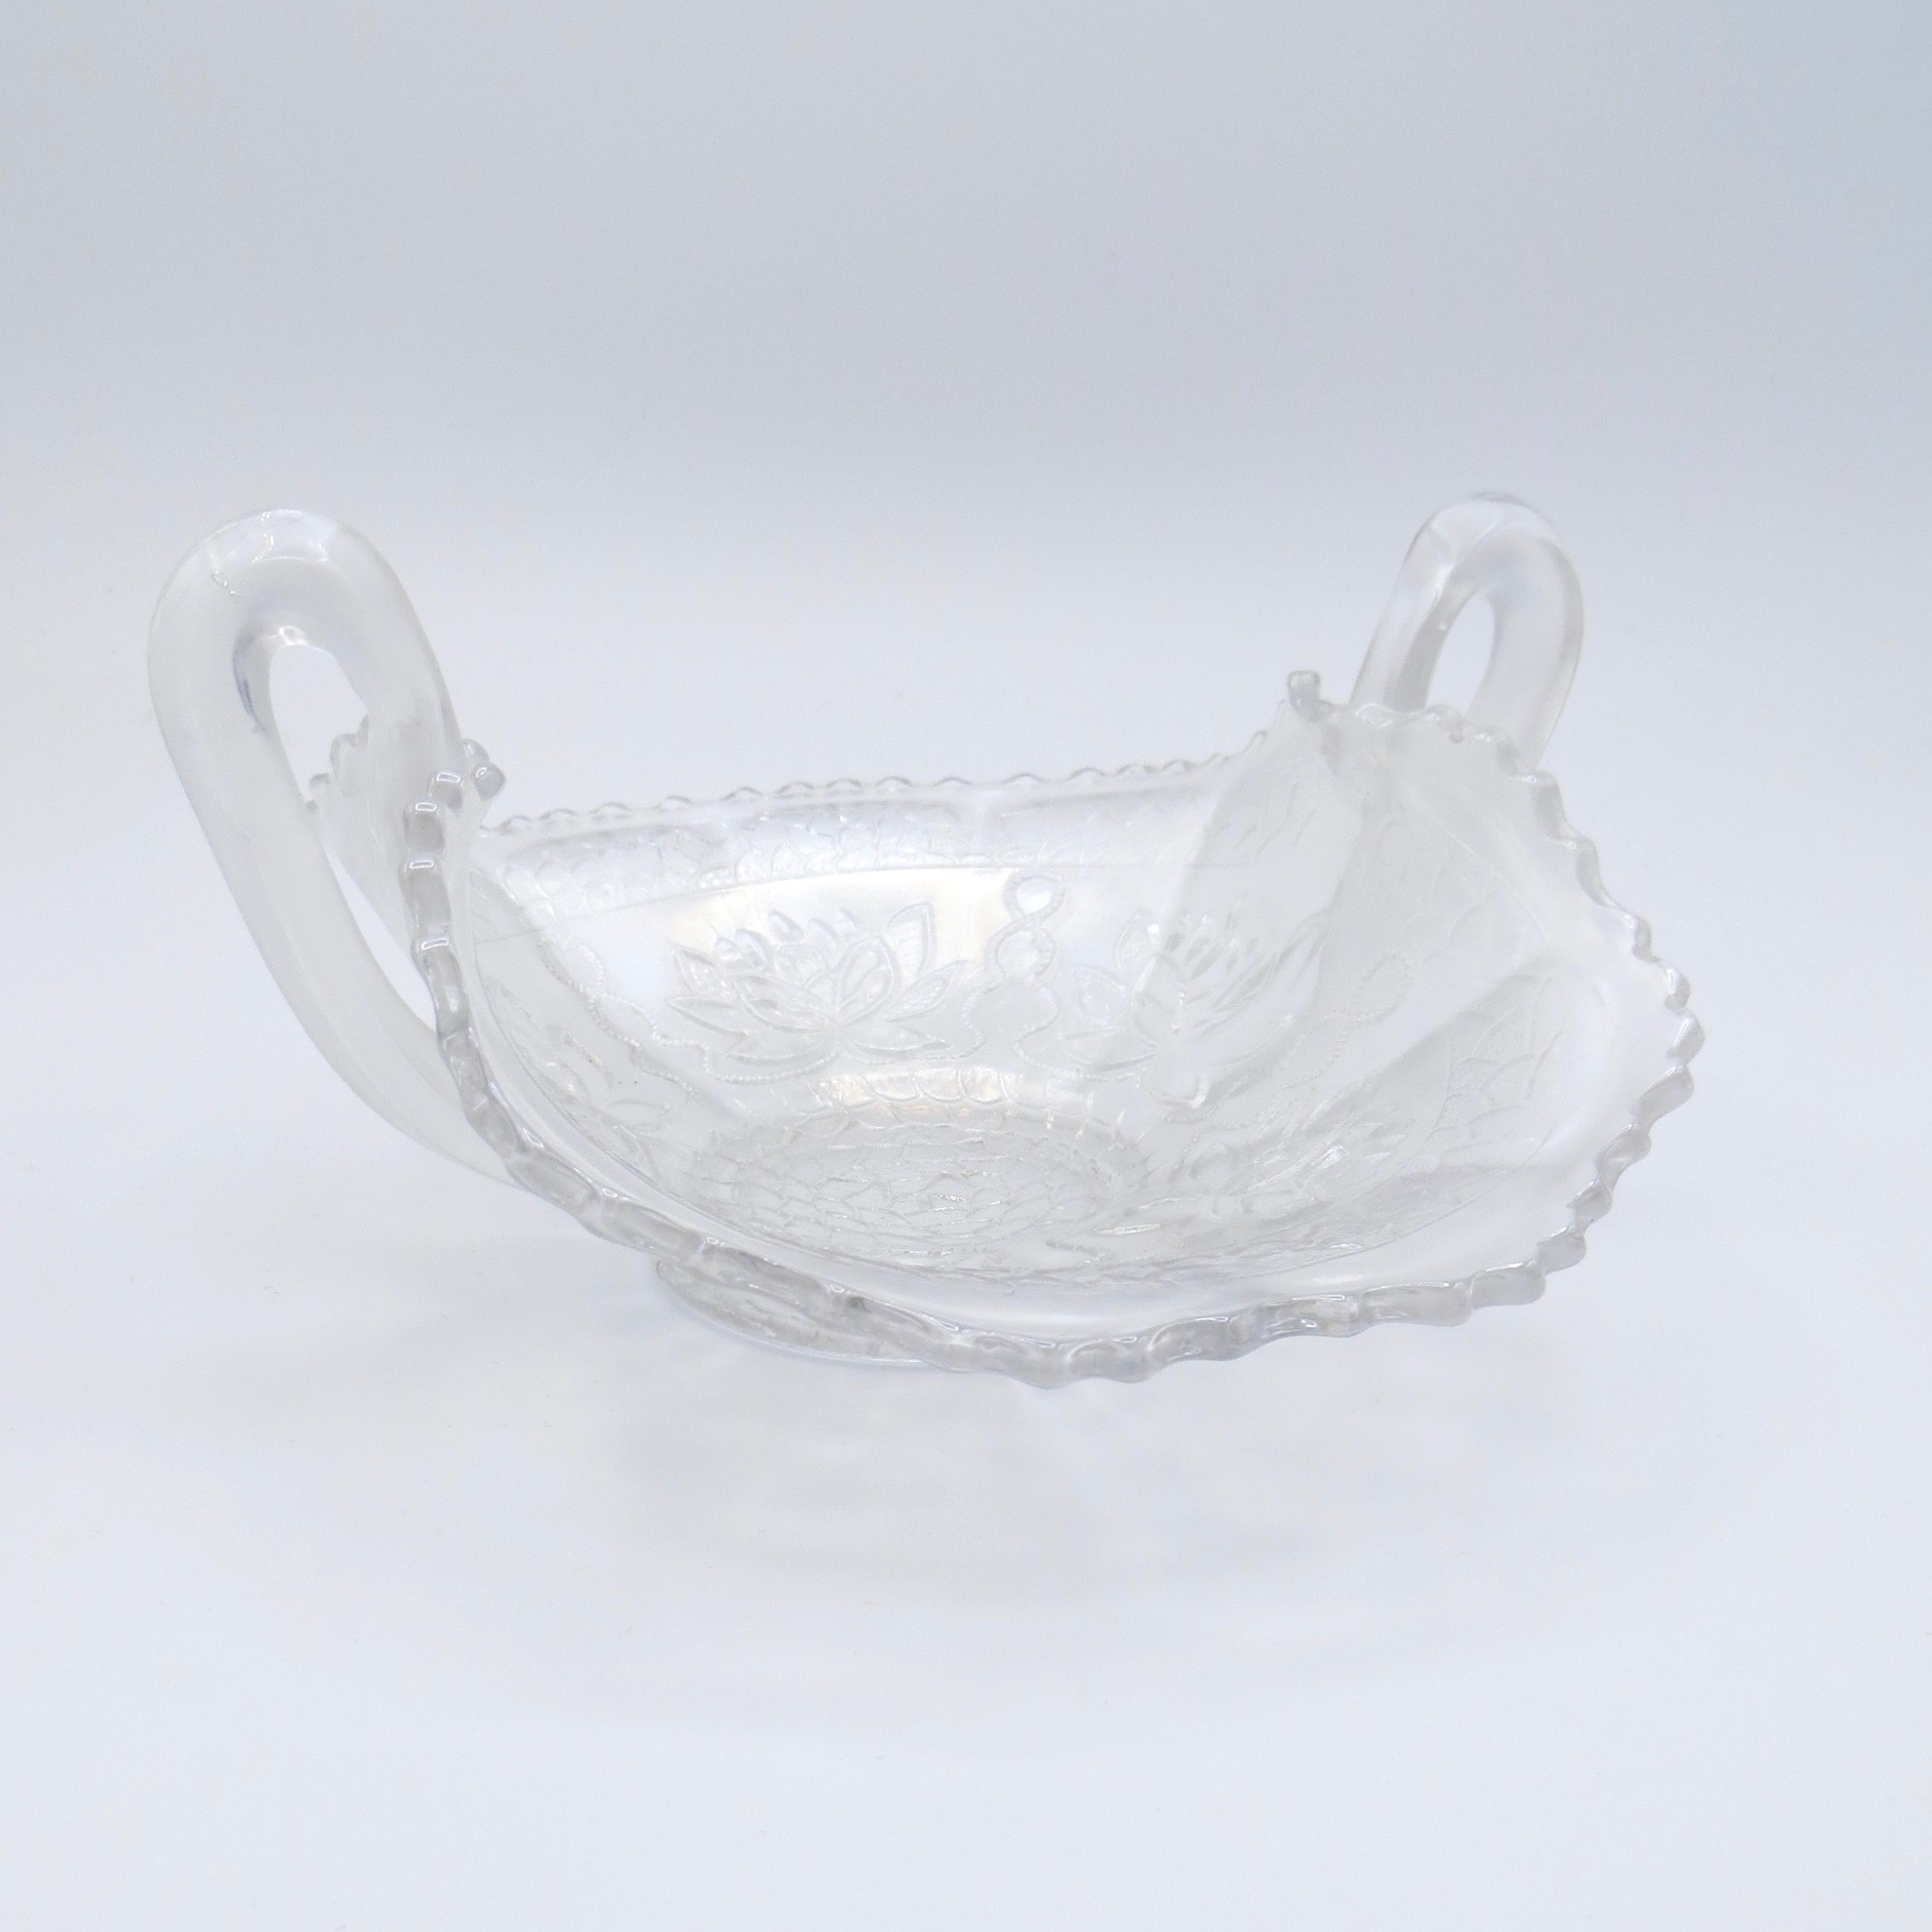 Rare White Carnival Glass Dish